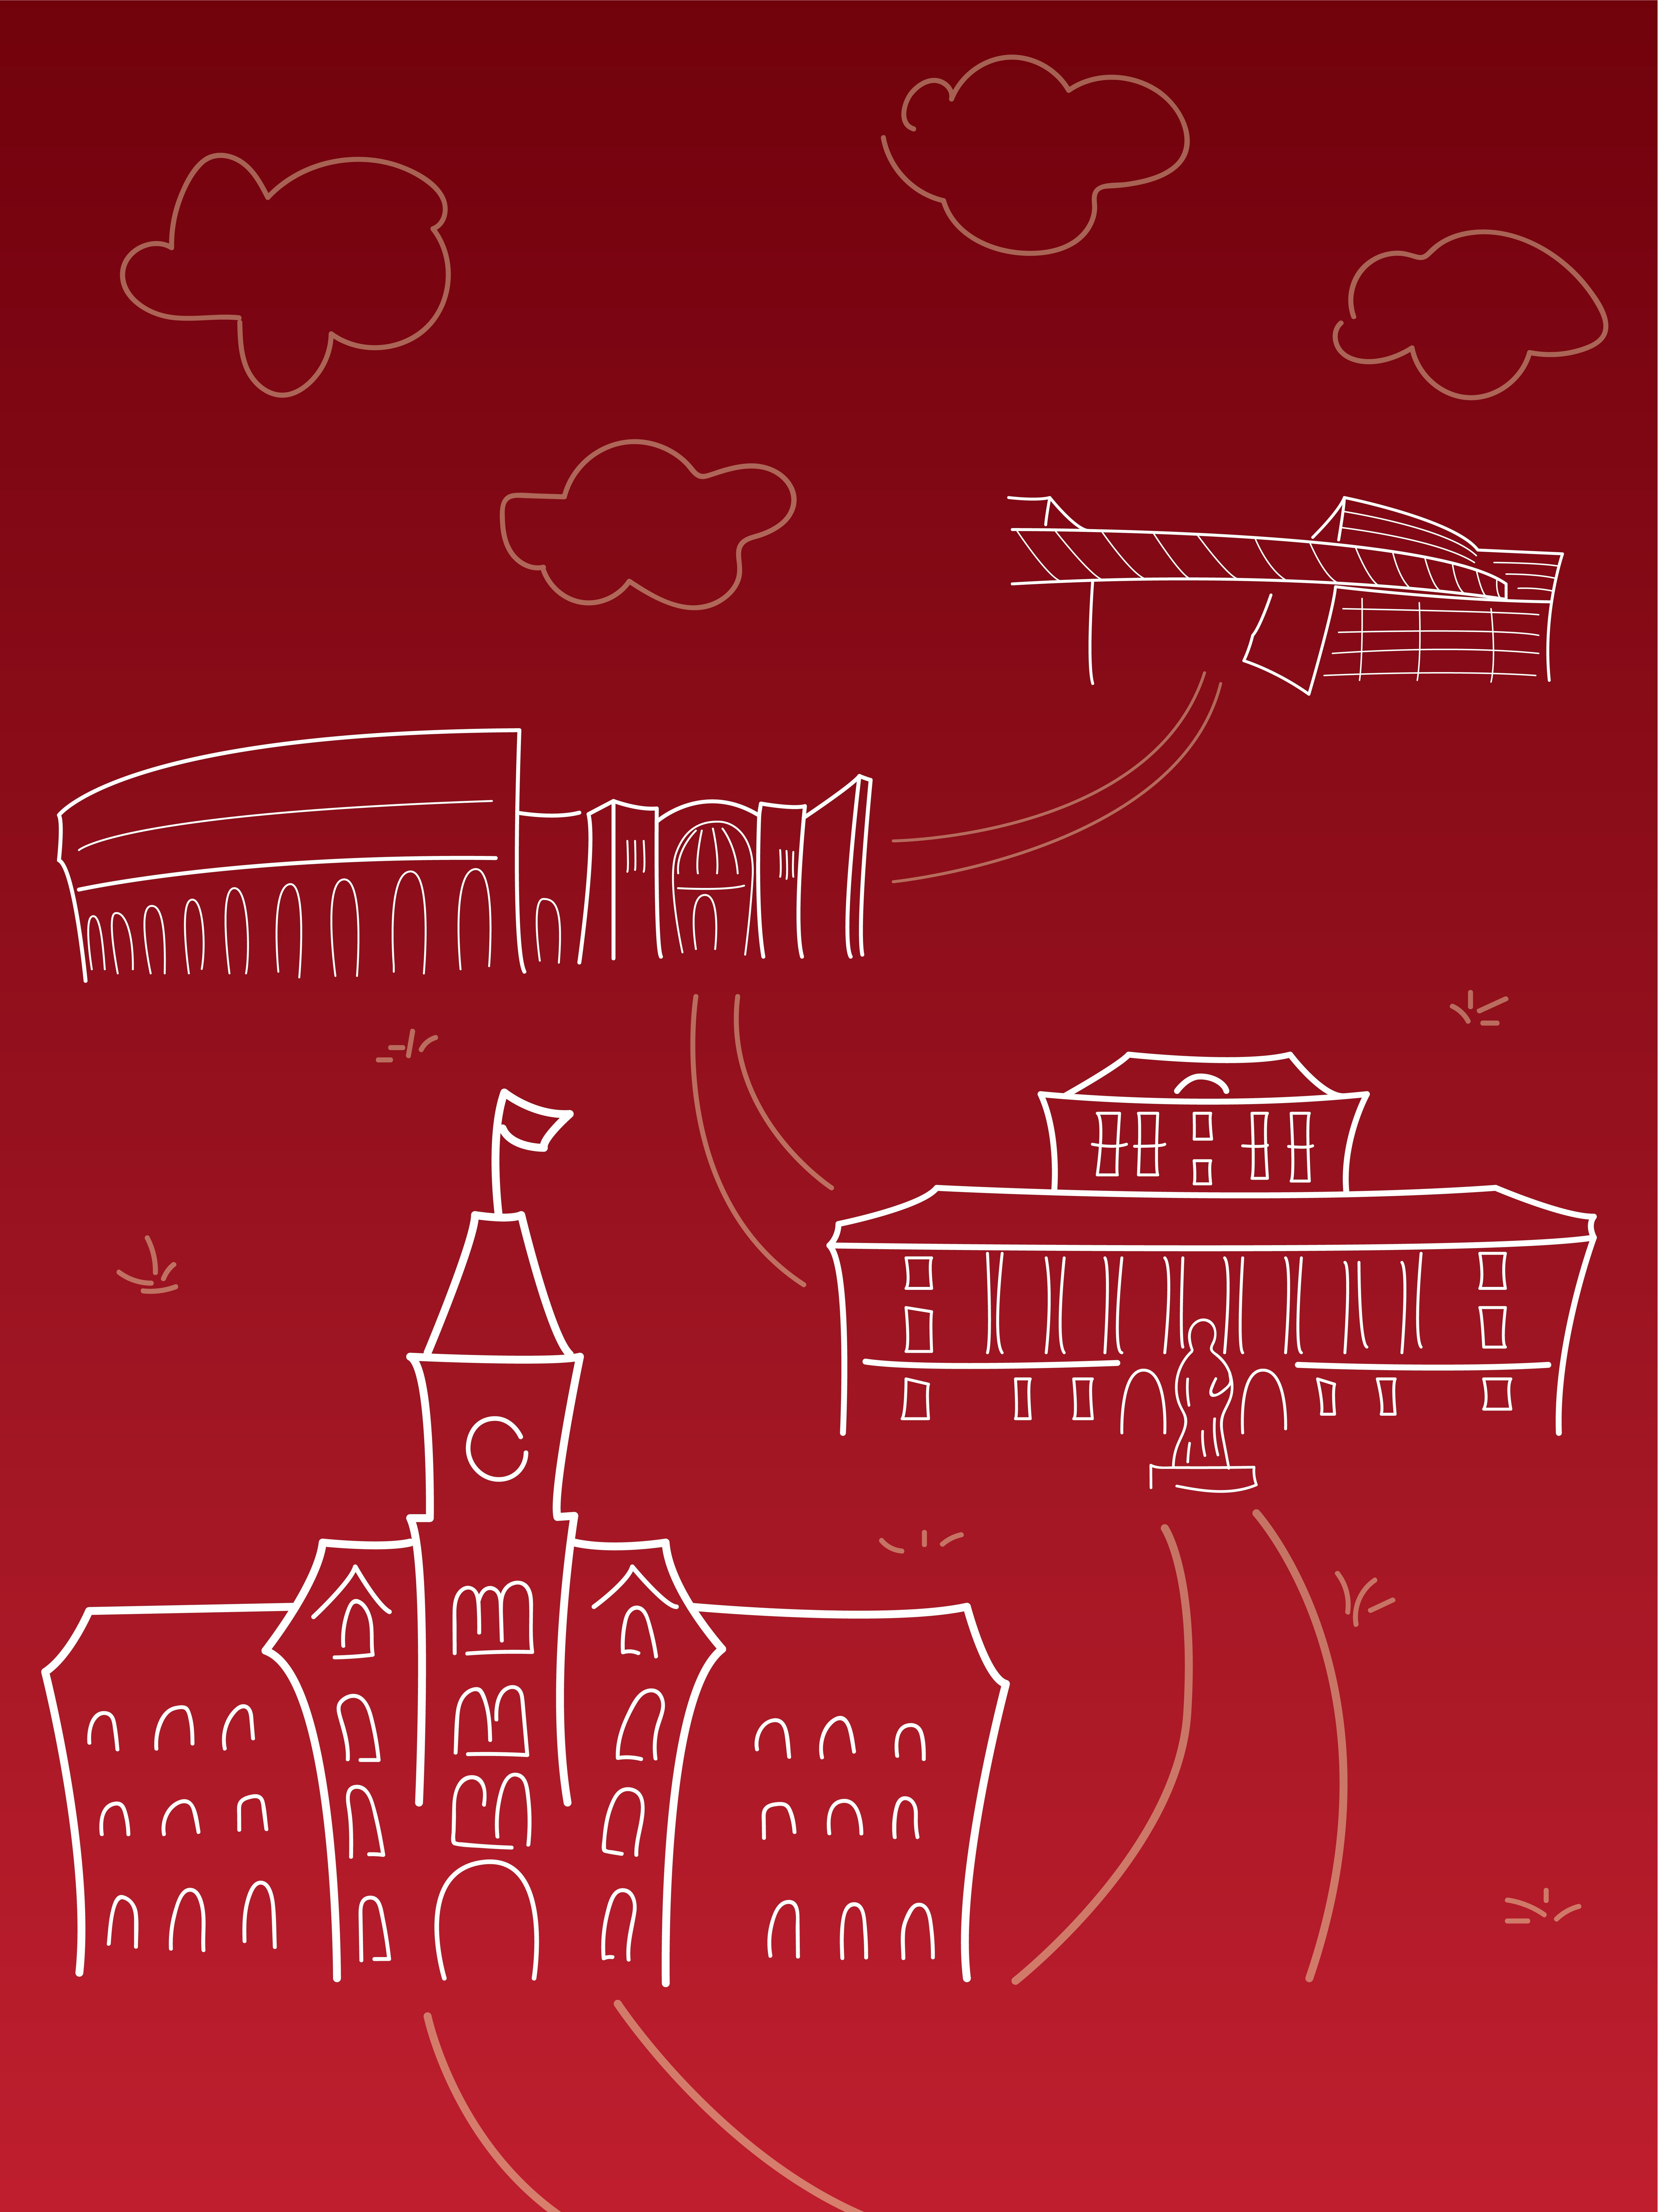 An illustration of various buildings on Campus.